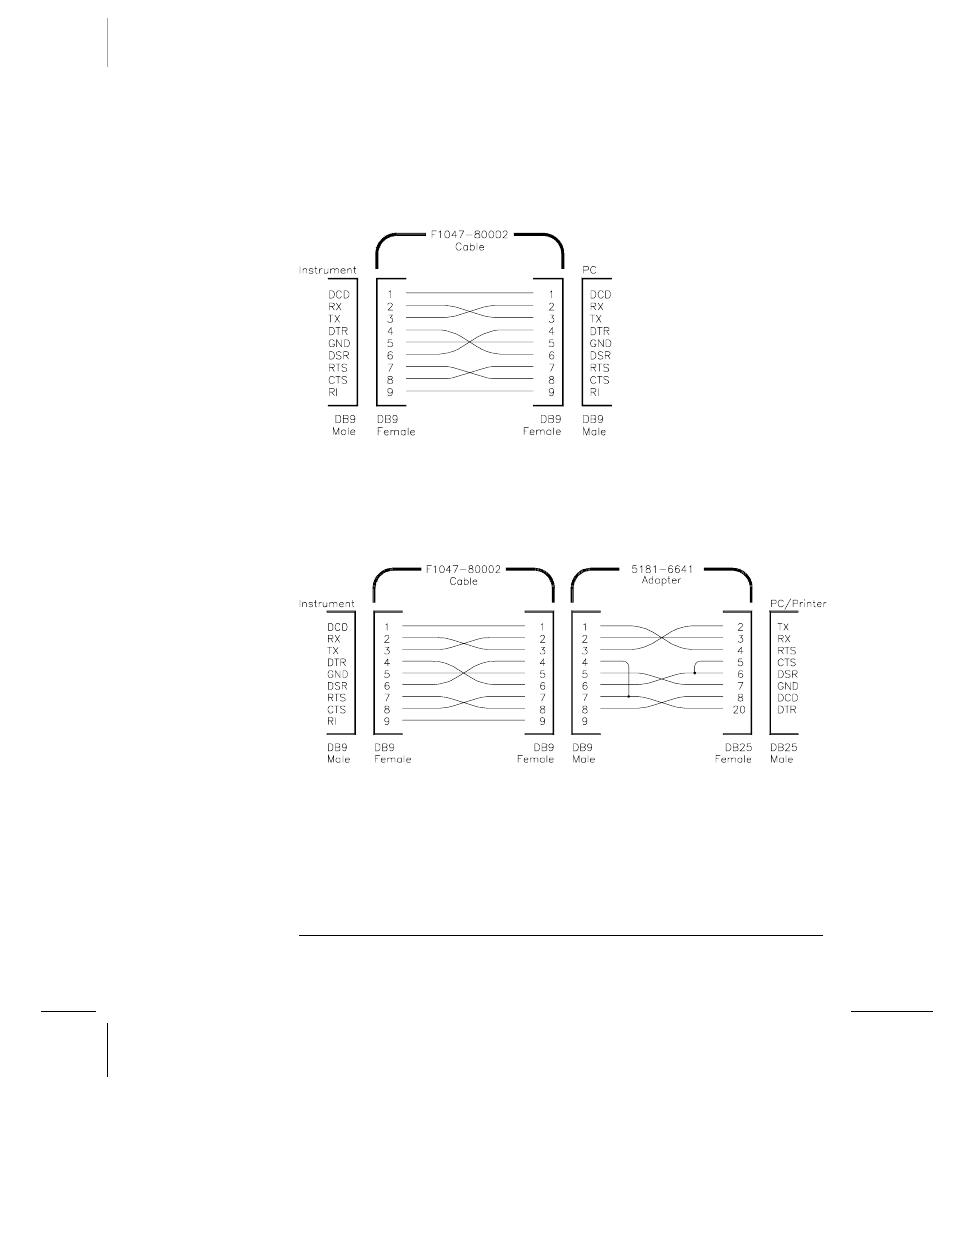 db-9 serial connection, db-25 serial connection | agilent technologies  34401a user manual | page 156 / 242